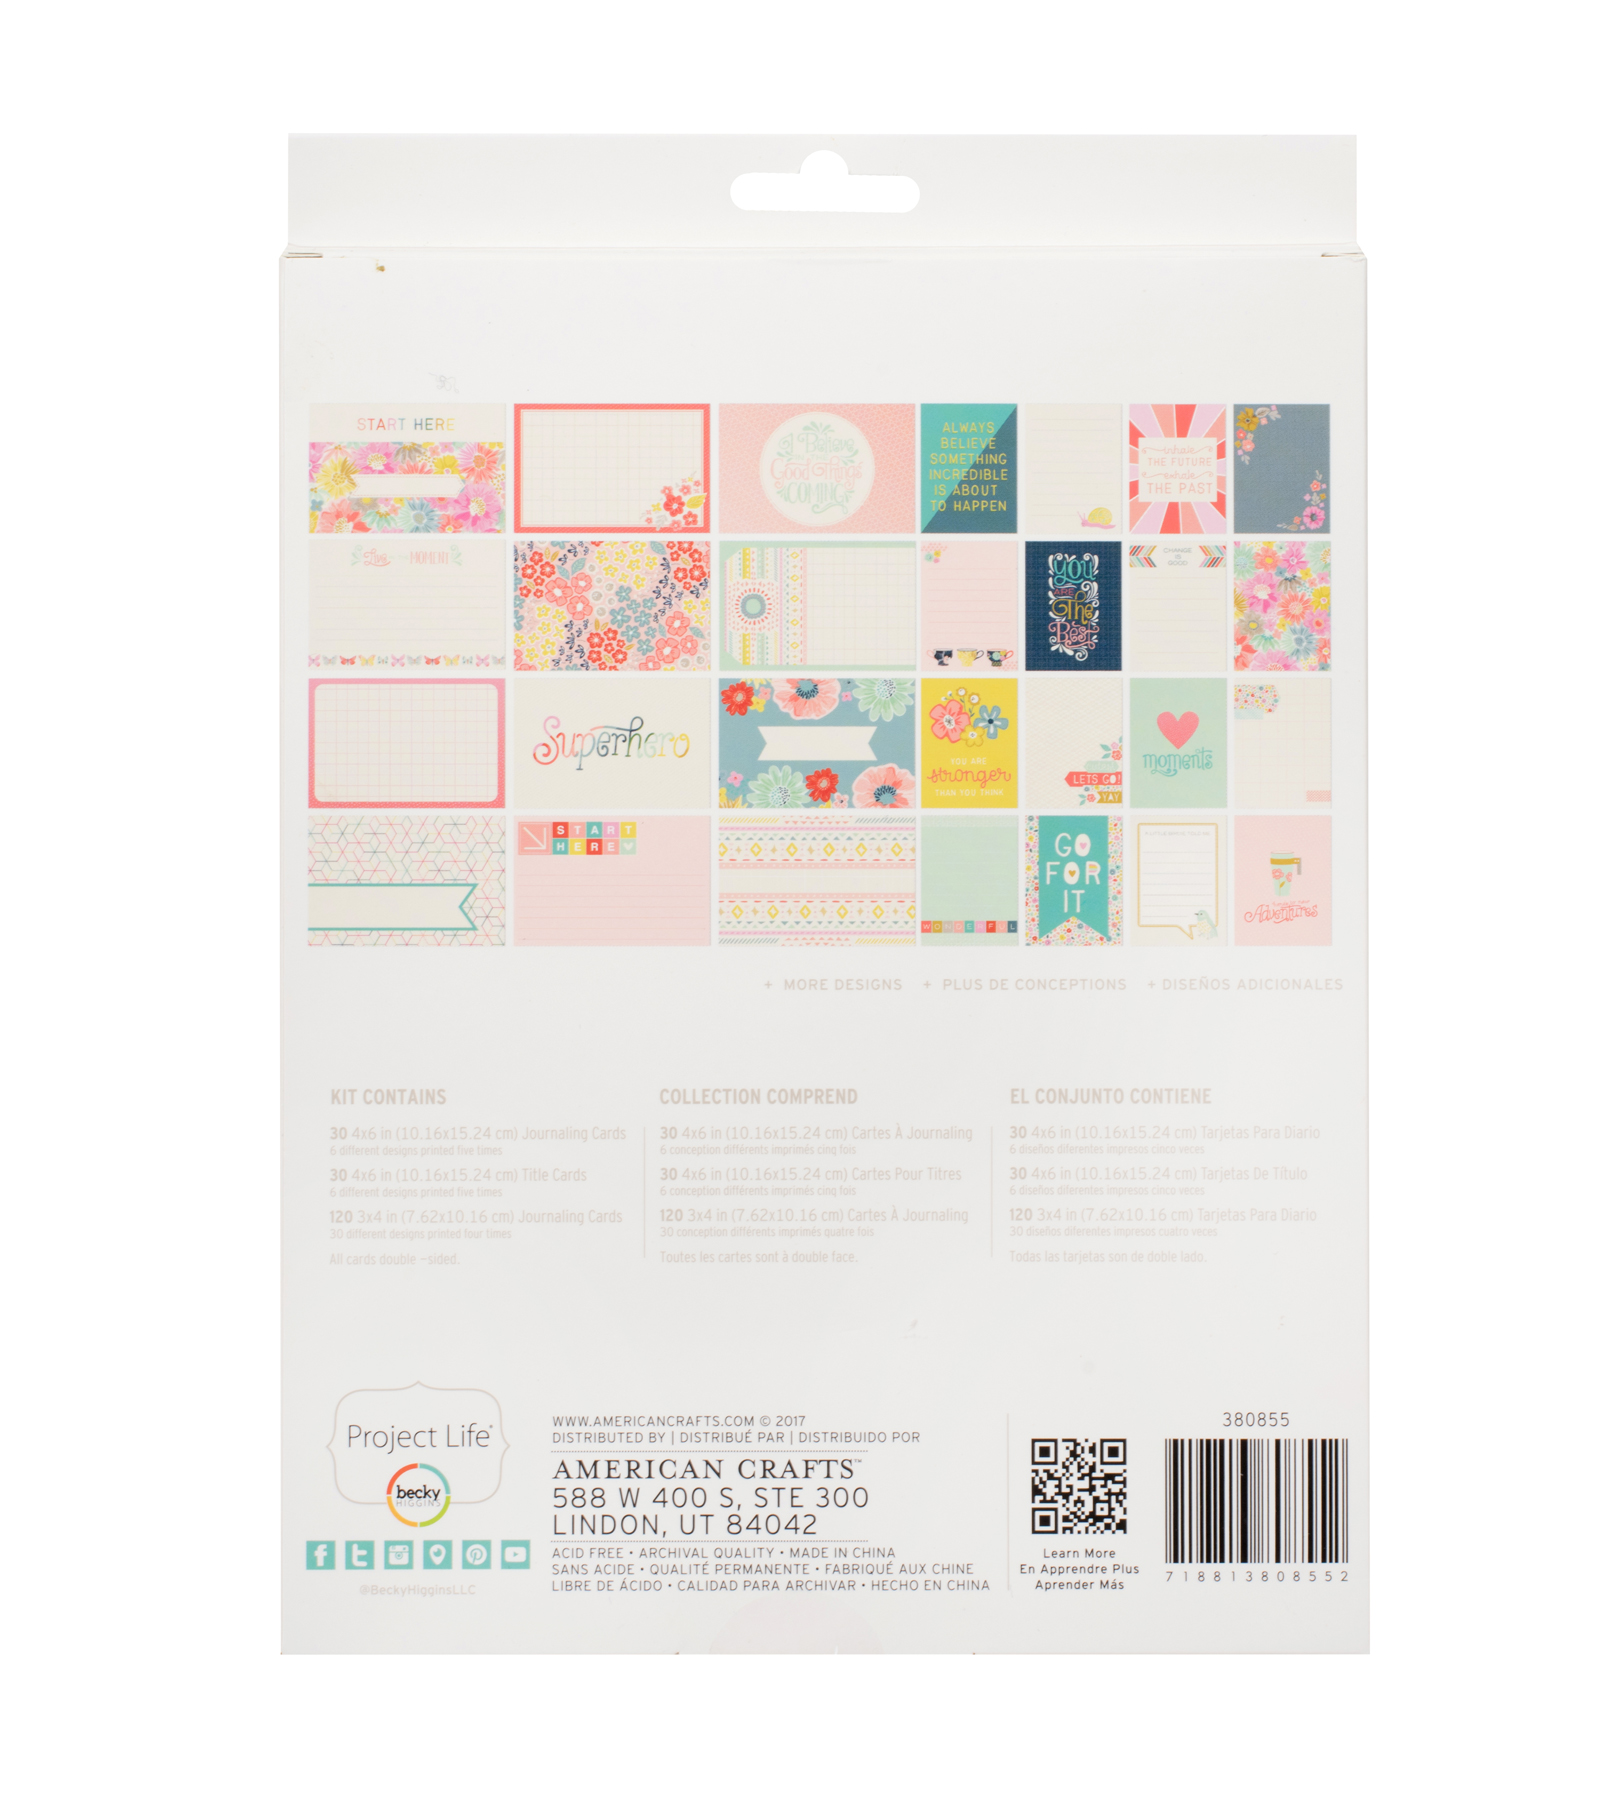 Project Life Turn the Page Paige Evans 180 pk Value Kit